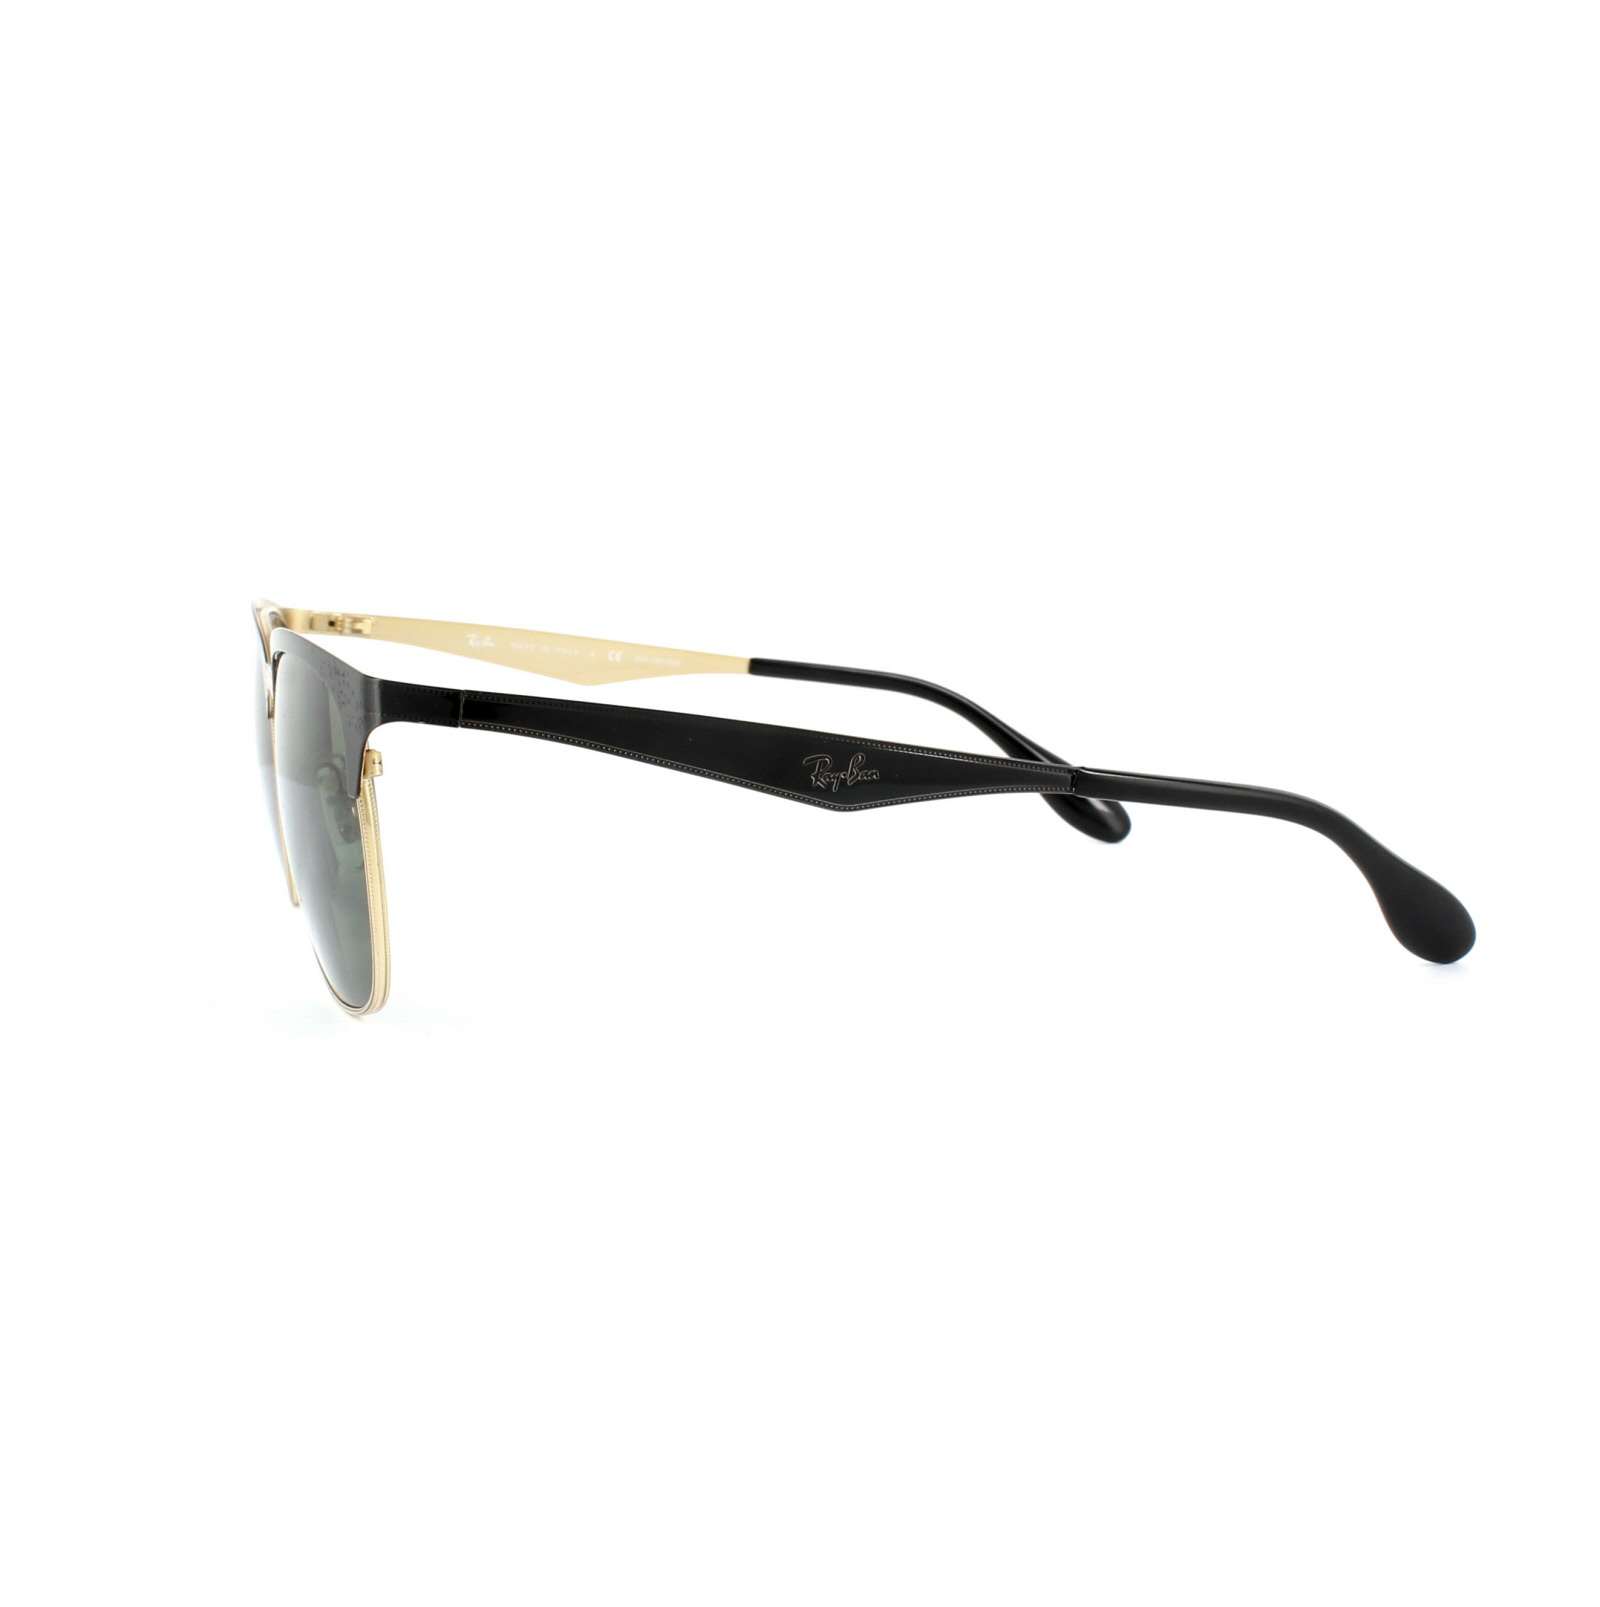 815907aa6d Sentinel Ray-Ban Sunglasses 3538 187 9A Black   Gold Green Polarized